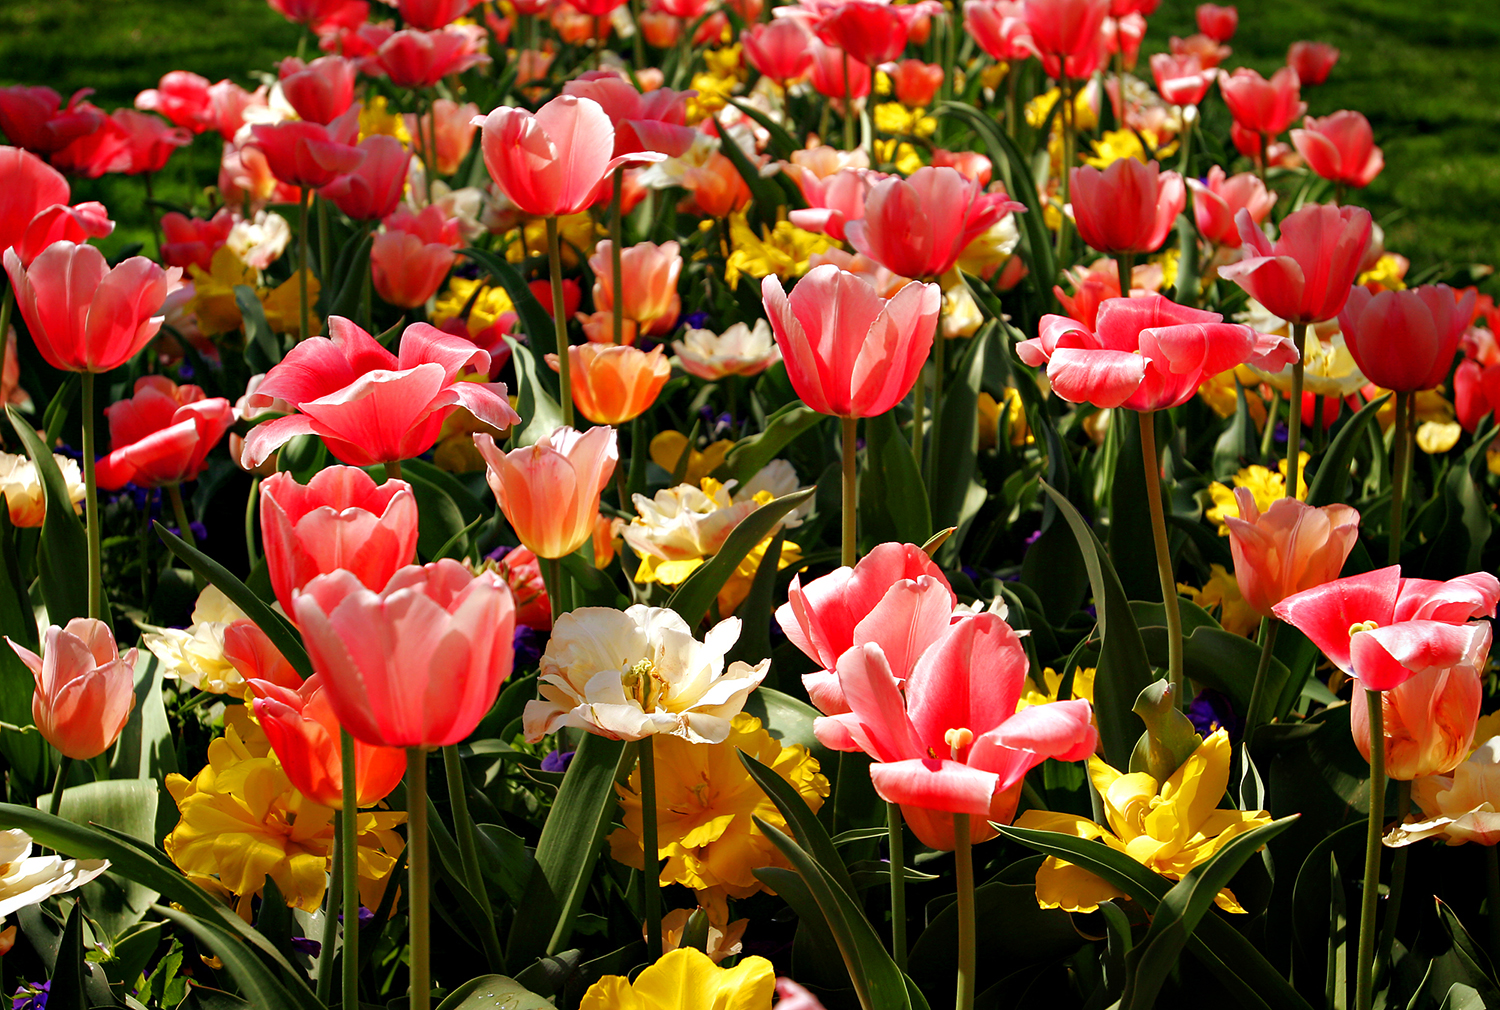 A patch of tulips shine bright at the Shaws Botanical Gardens in St. Louis. David Albers/The State Journal-Register